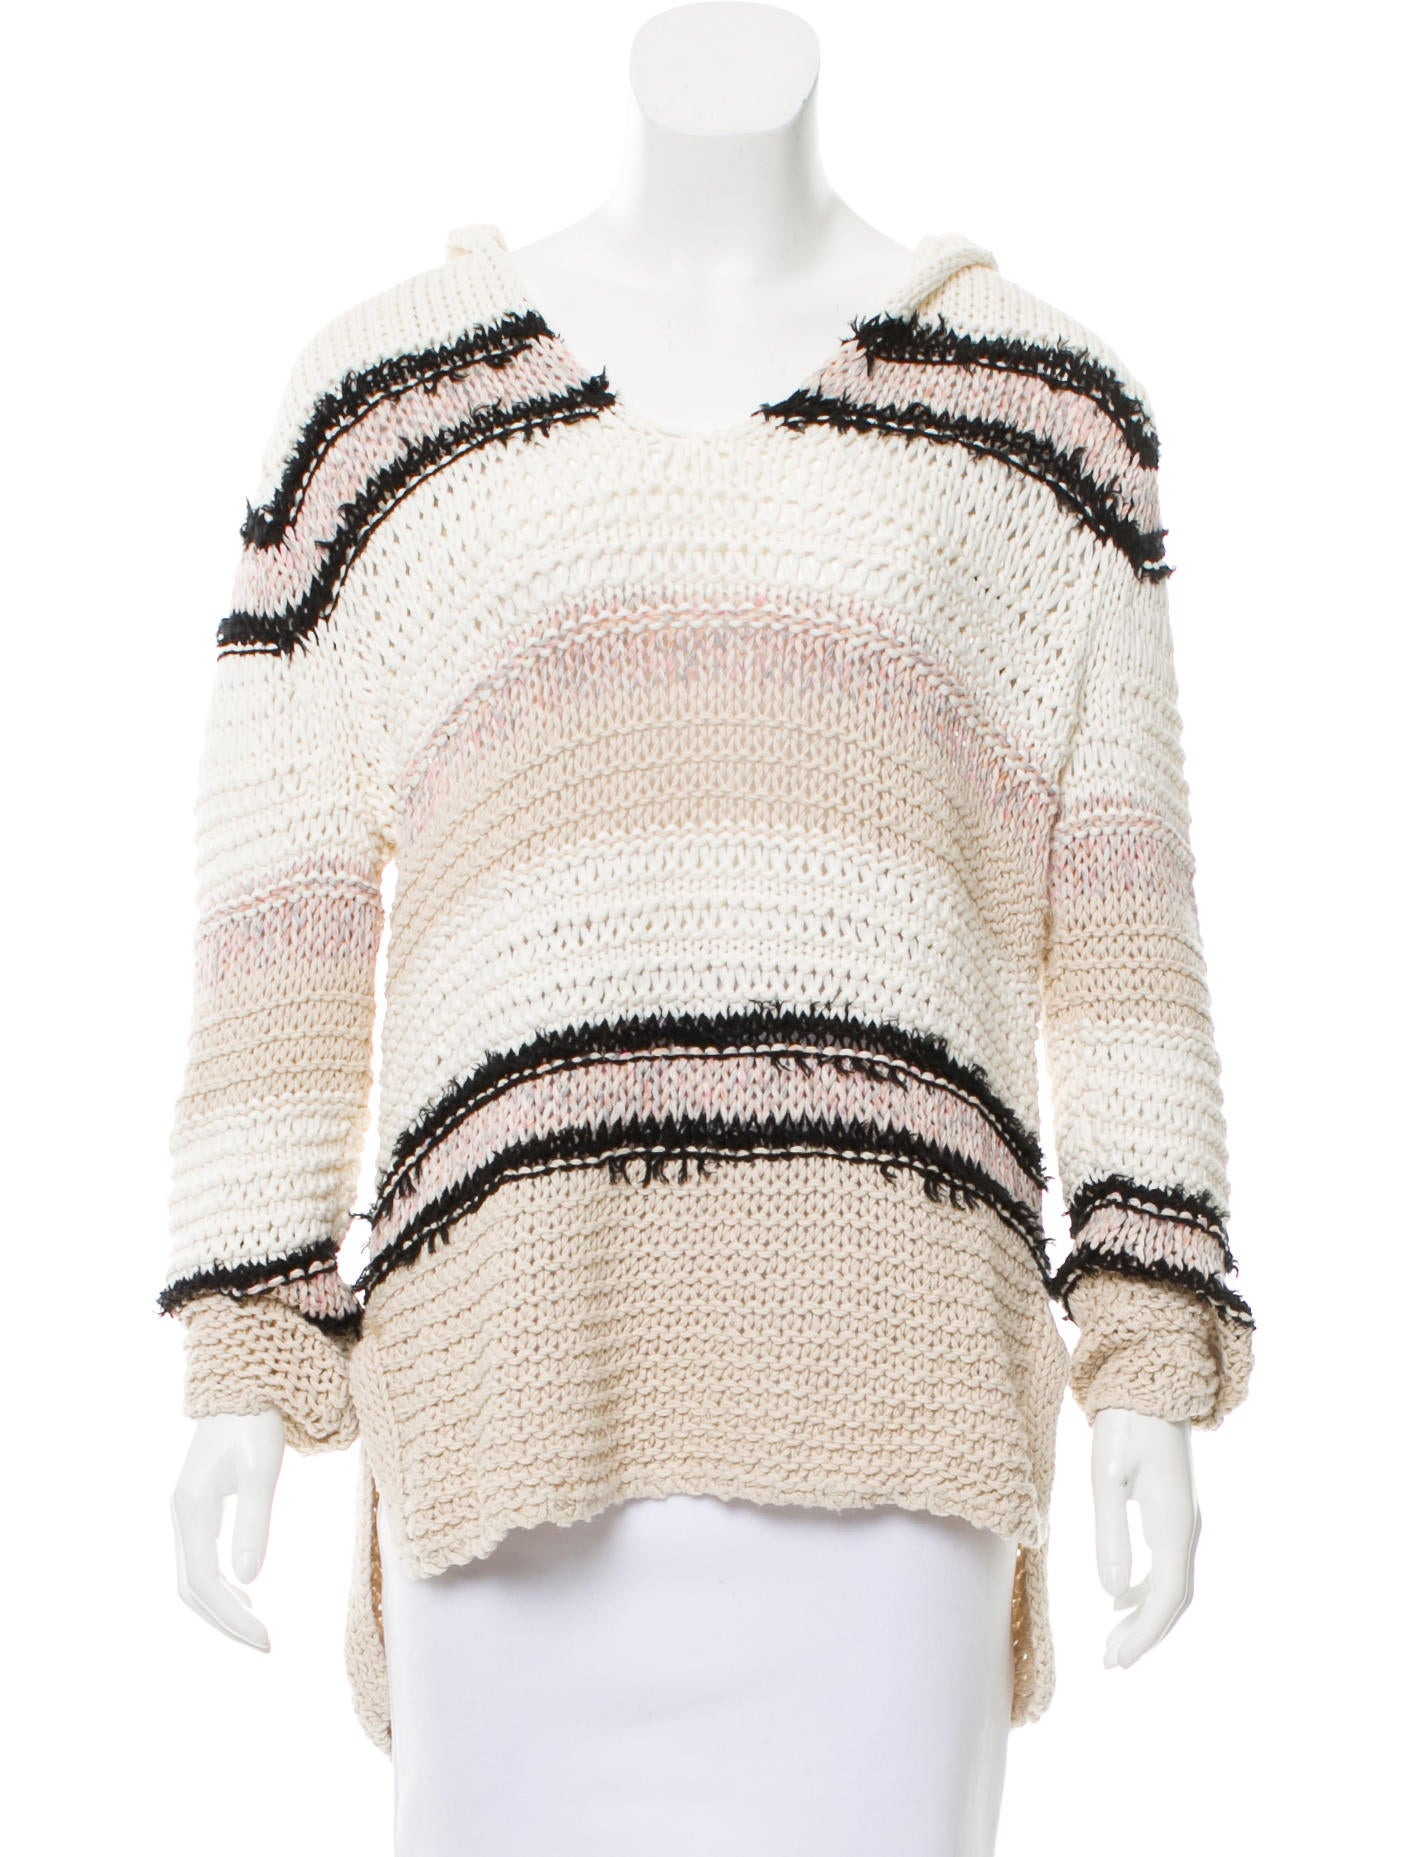 Rag Bone Cable Knit Hooded Sweater Clothing Wragb94829 The